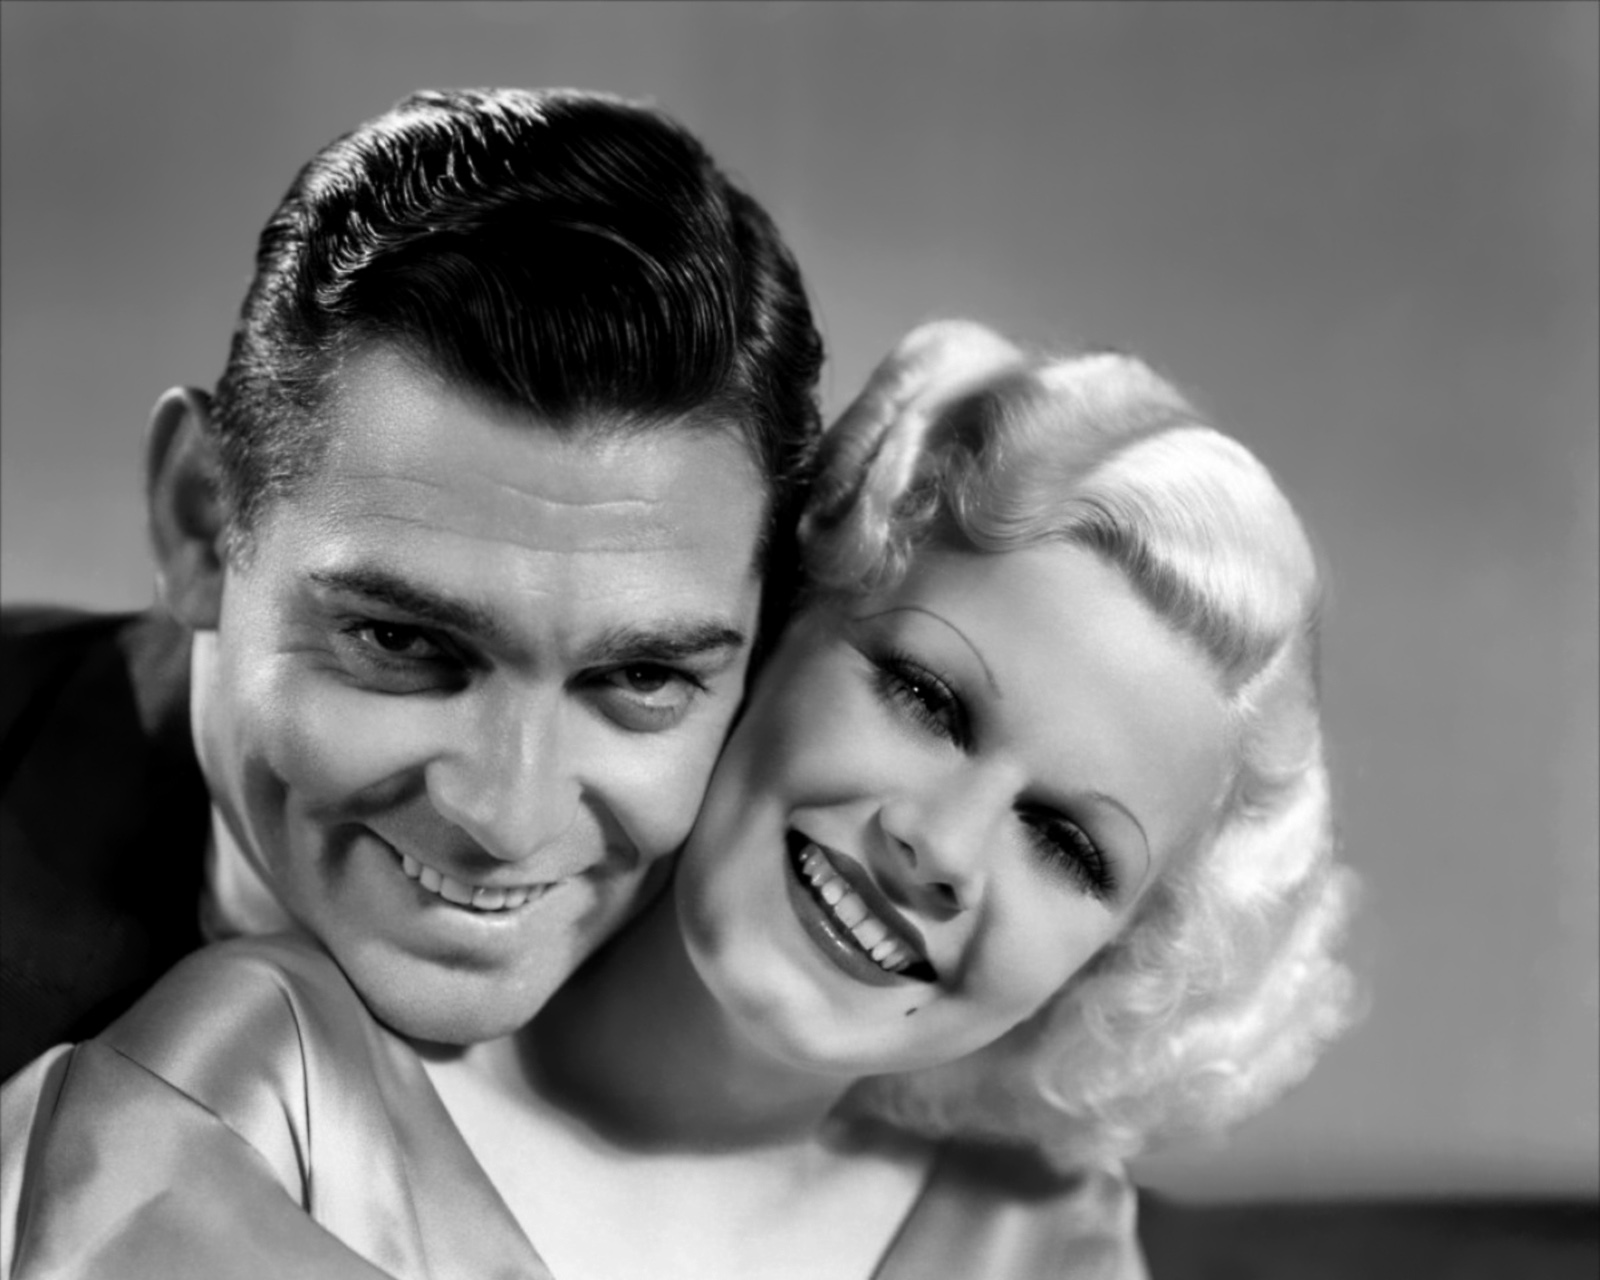 Clark and Jean Harlow